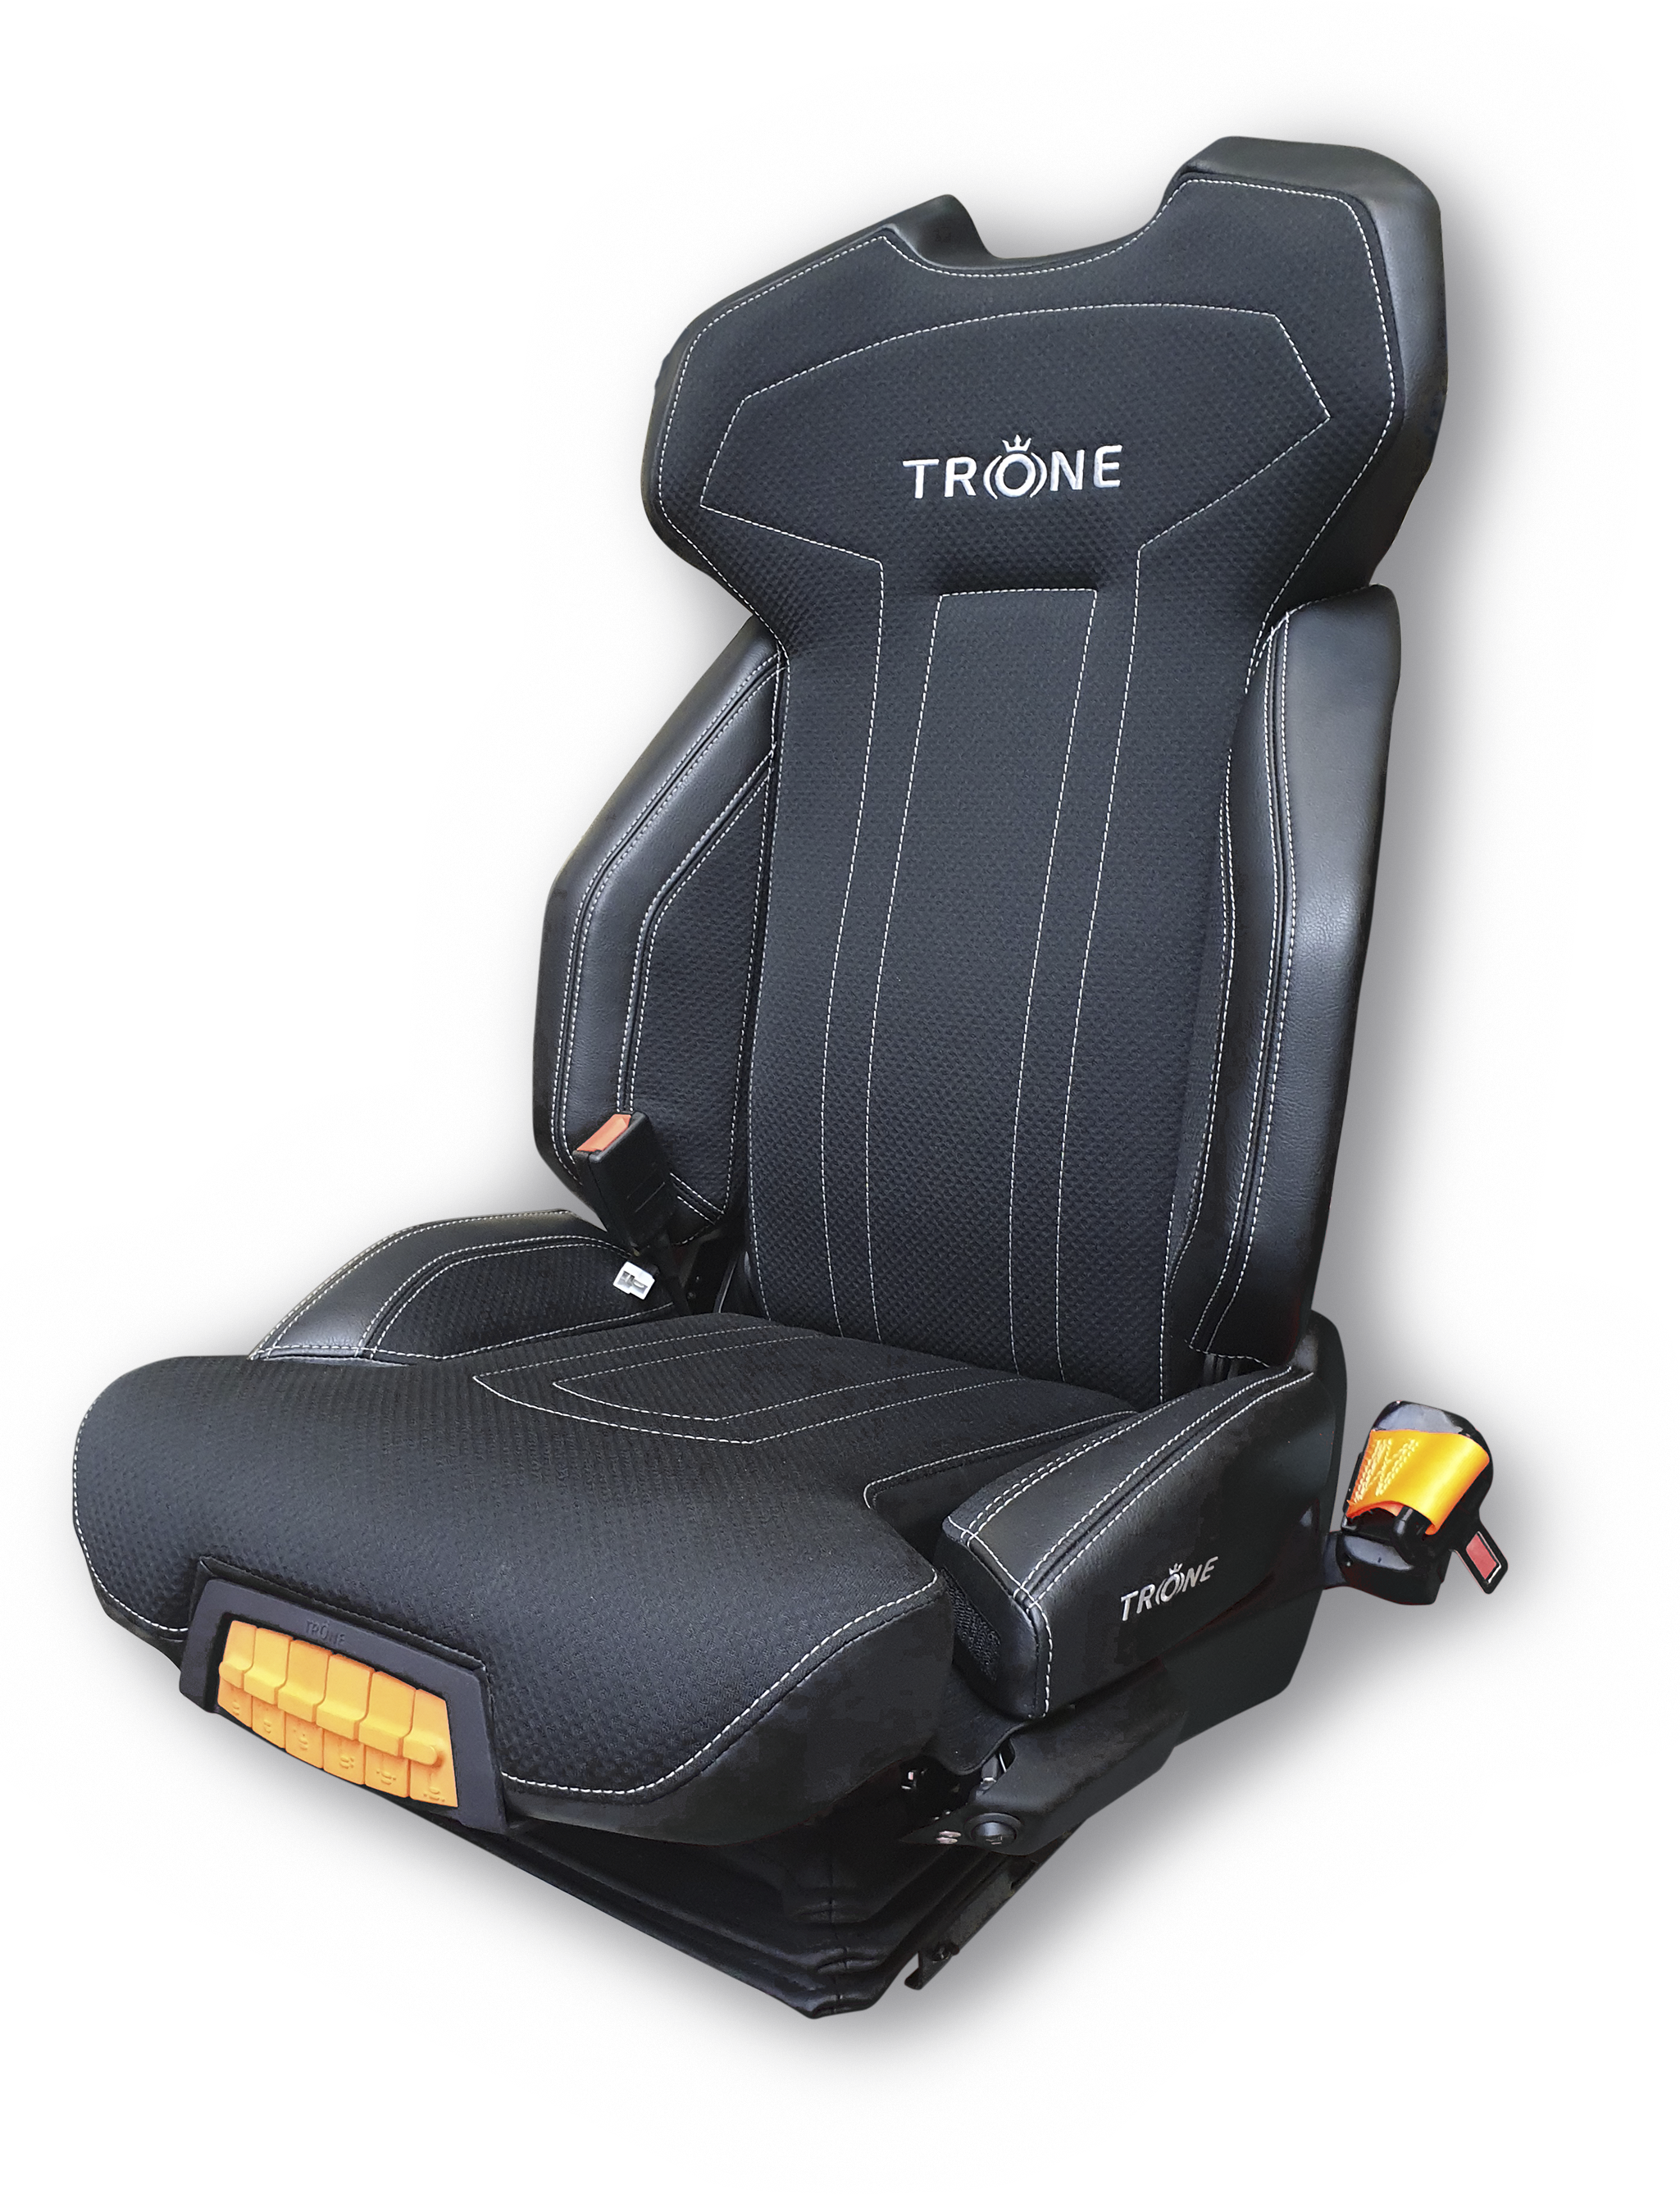 Trone-High-Back-Narrow-no-headrest